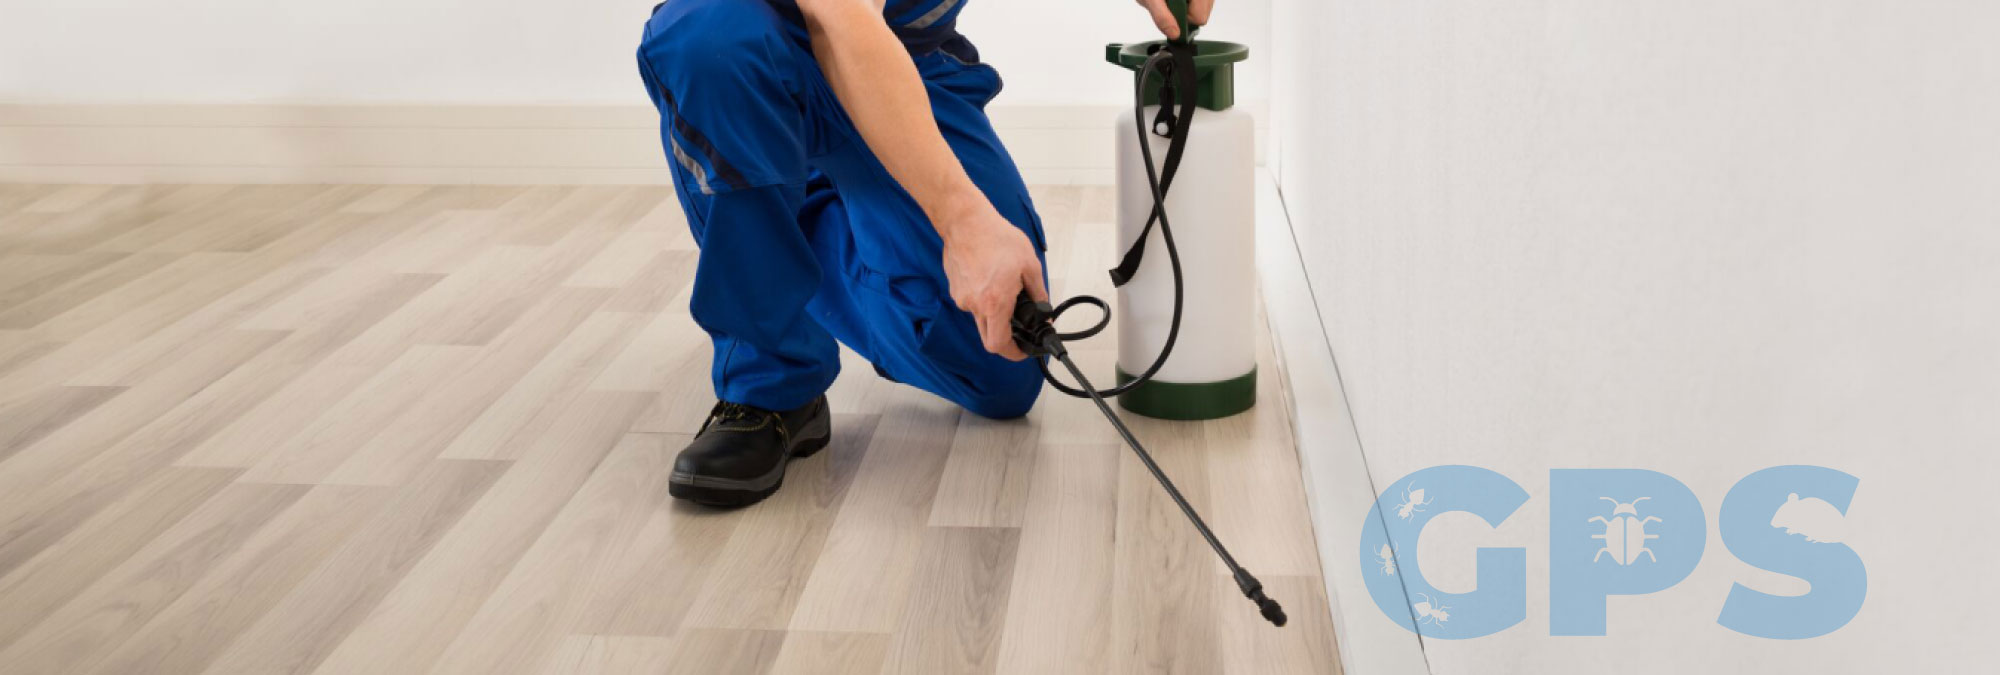 pest control for business